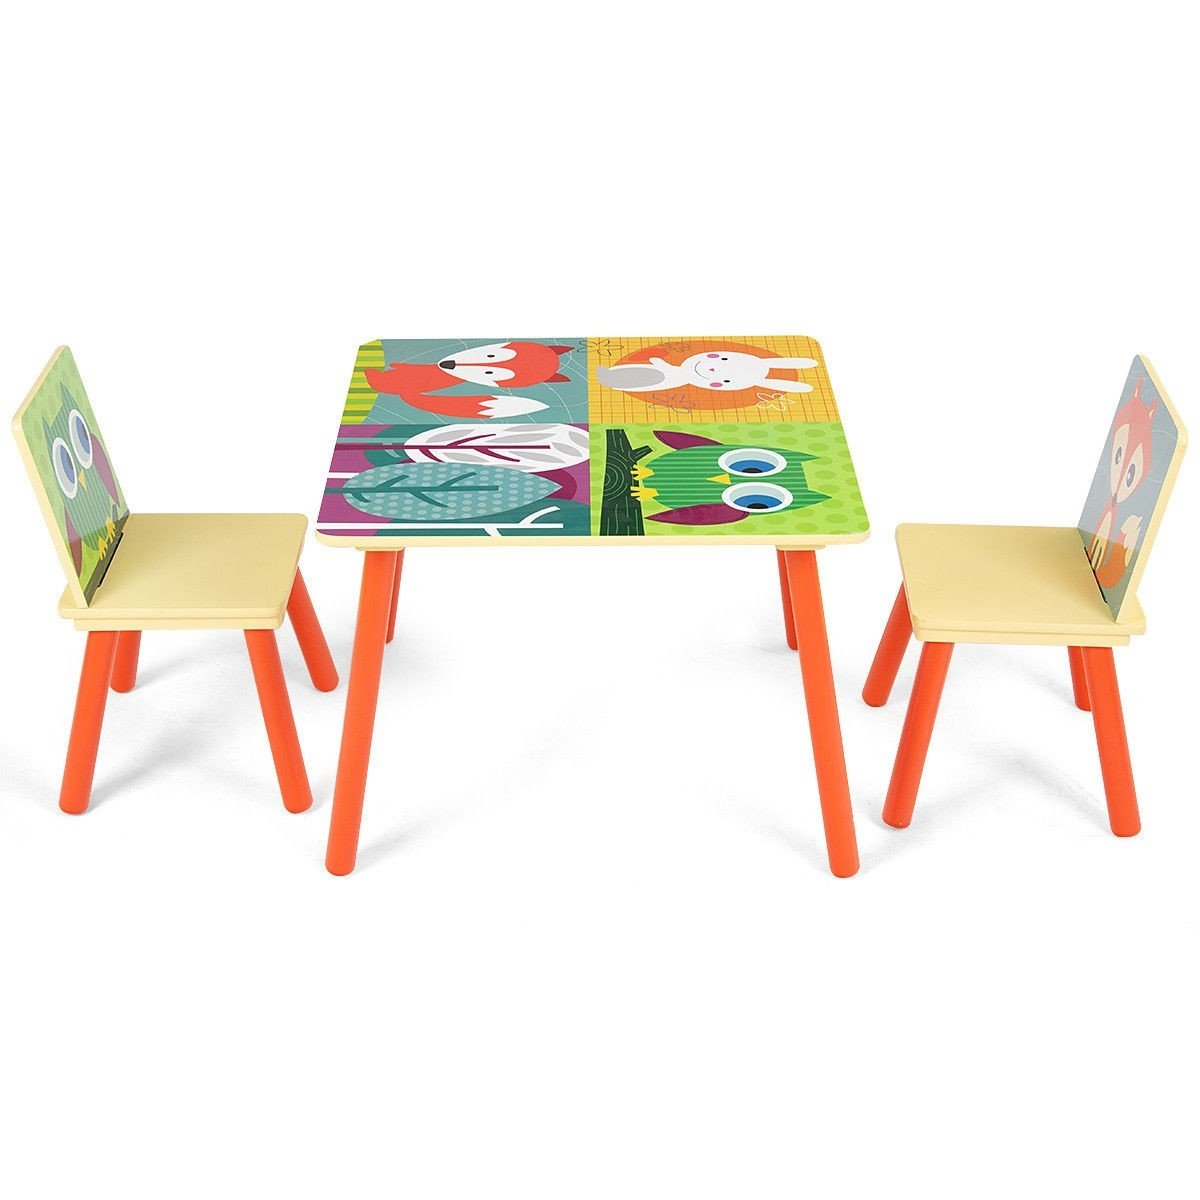 Kids Table and 2 Chairs Set Desk - Cartoon Pattern - Functional - Set of Furniture - Indoors or Outdoors